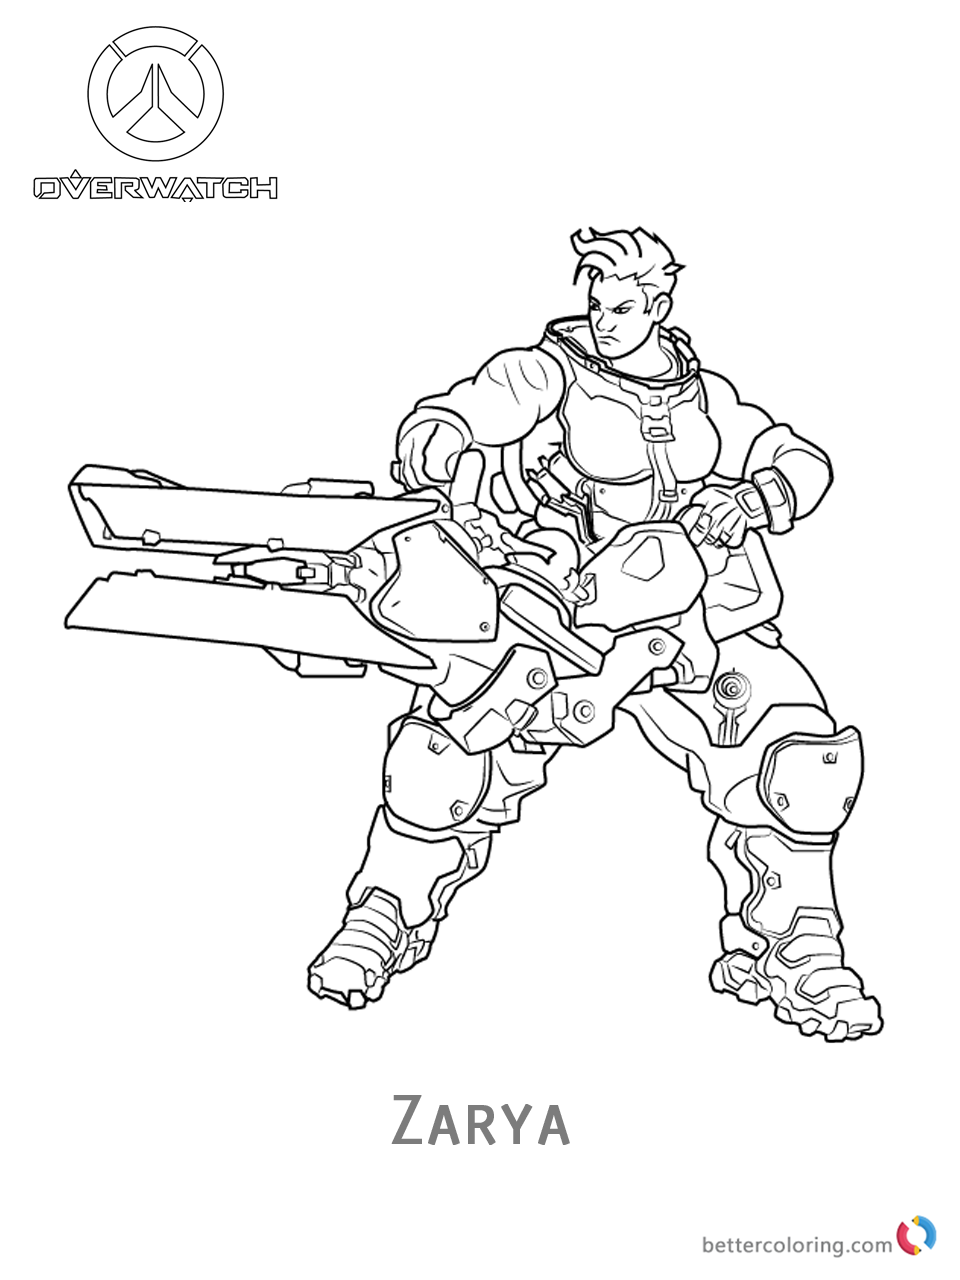 Zarya From Overwatch Coloring Pages Free Printable